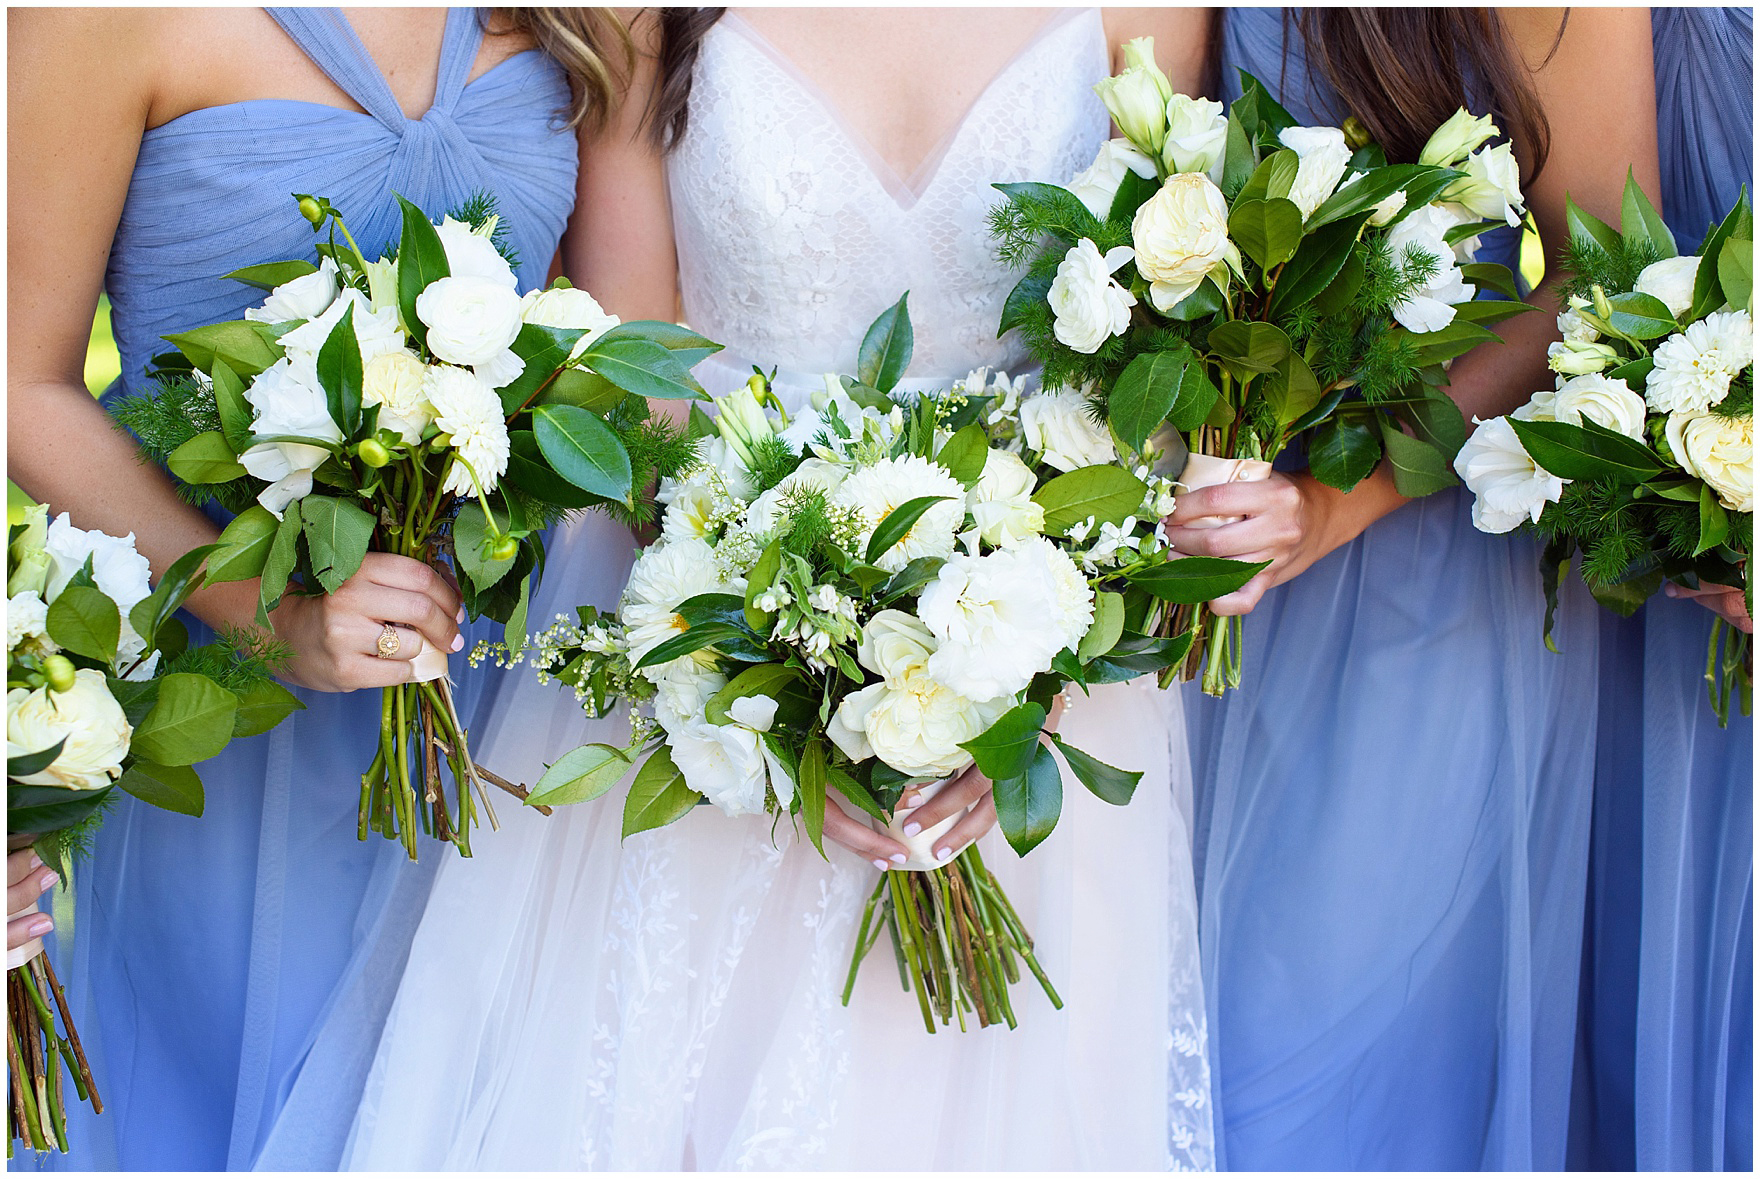 Details of green and ivory bouquets by Flowers for Dreams during a Butterfield Country Club wedding.